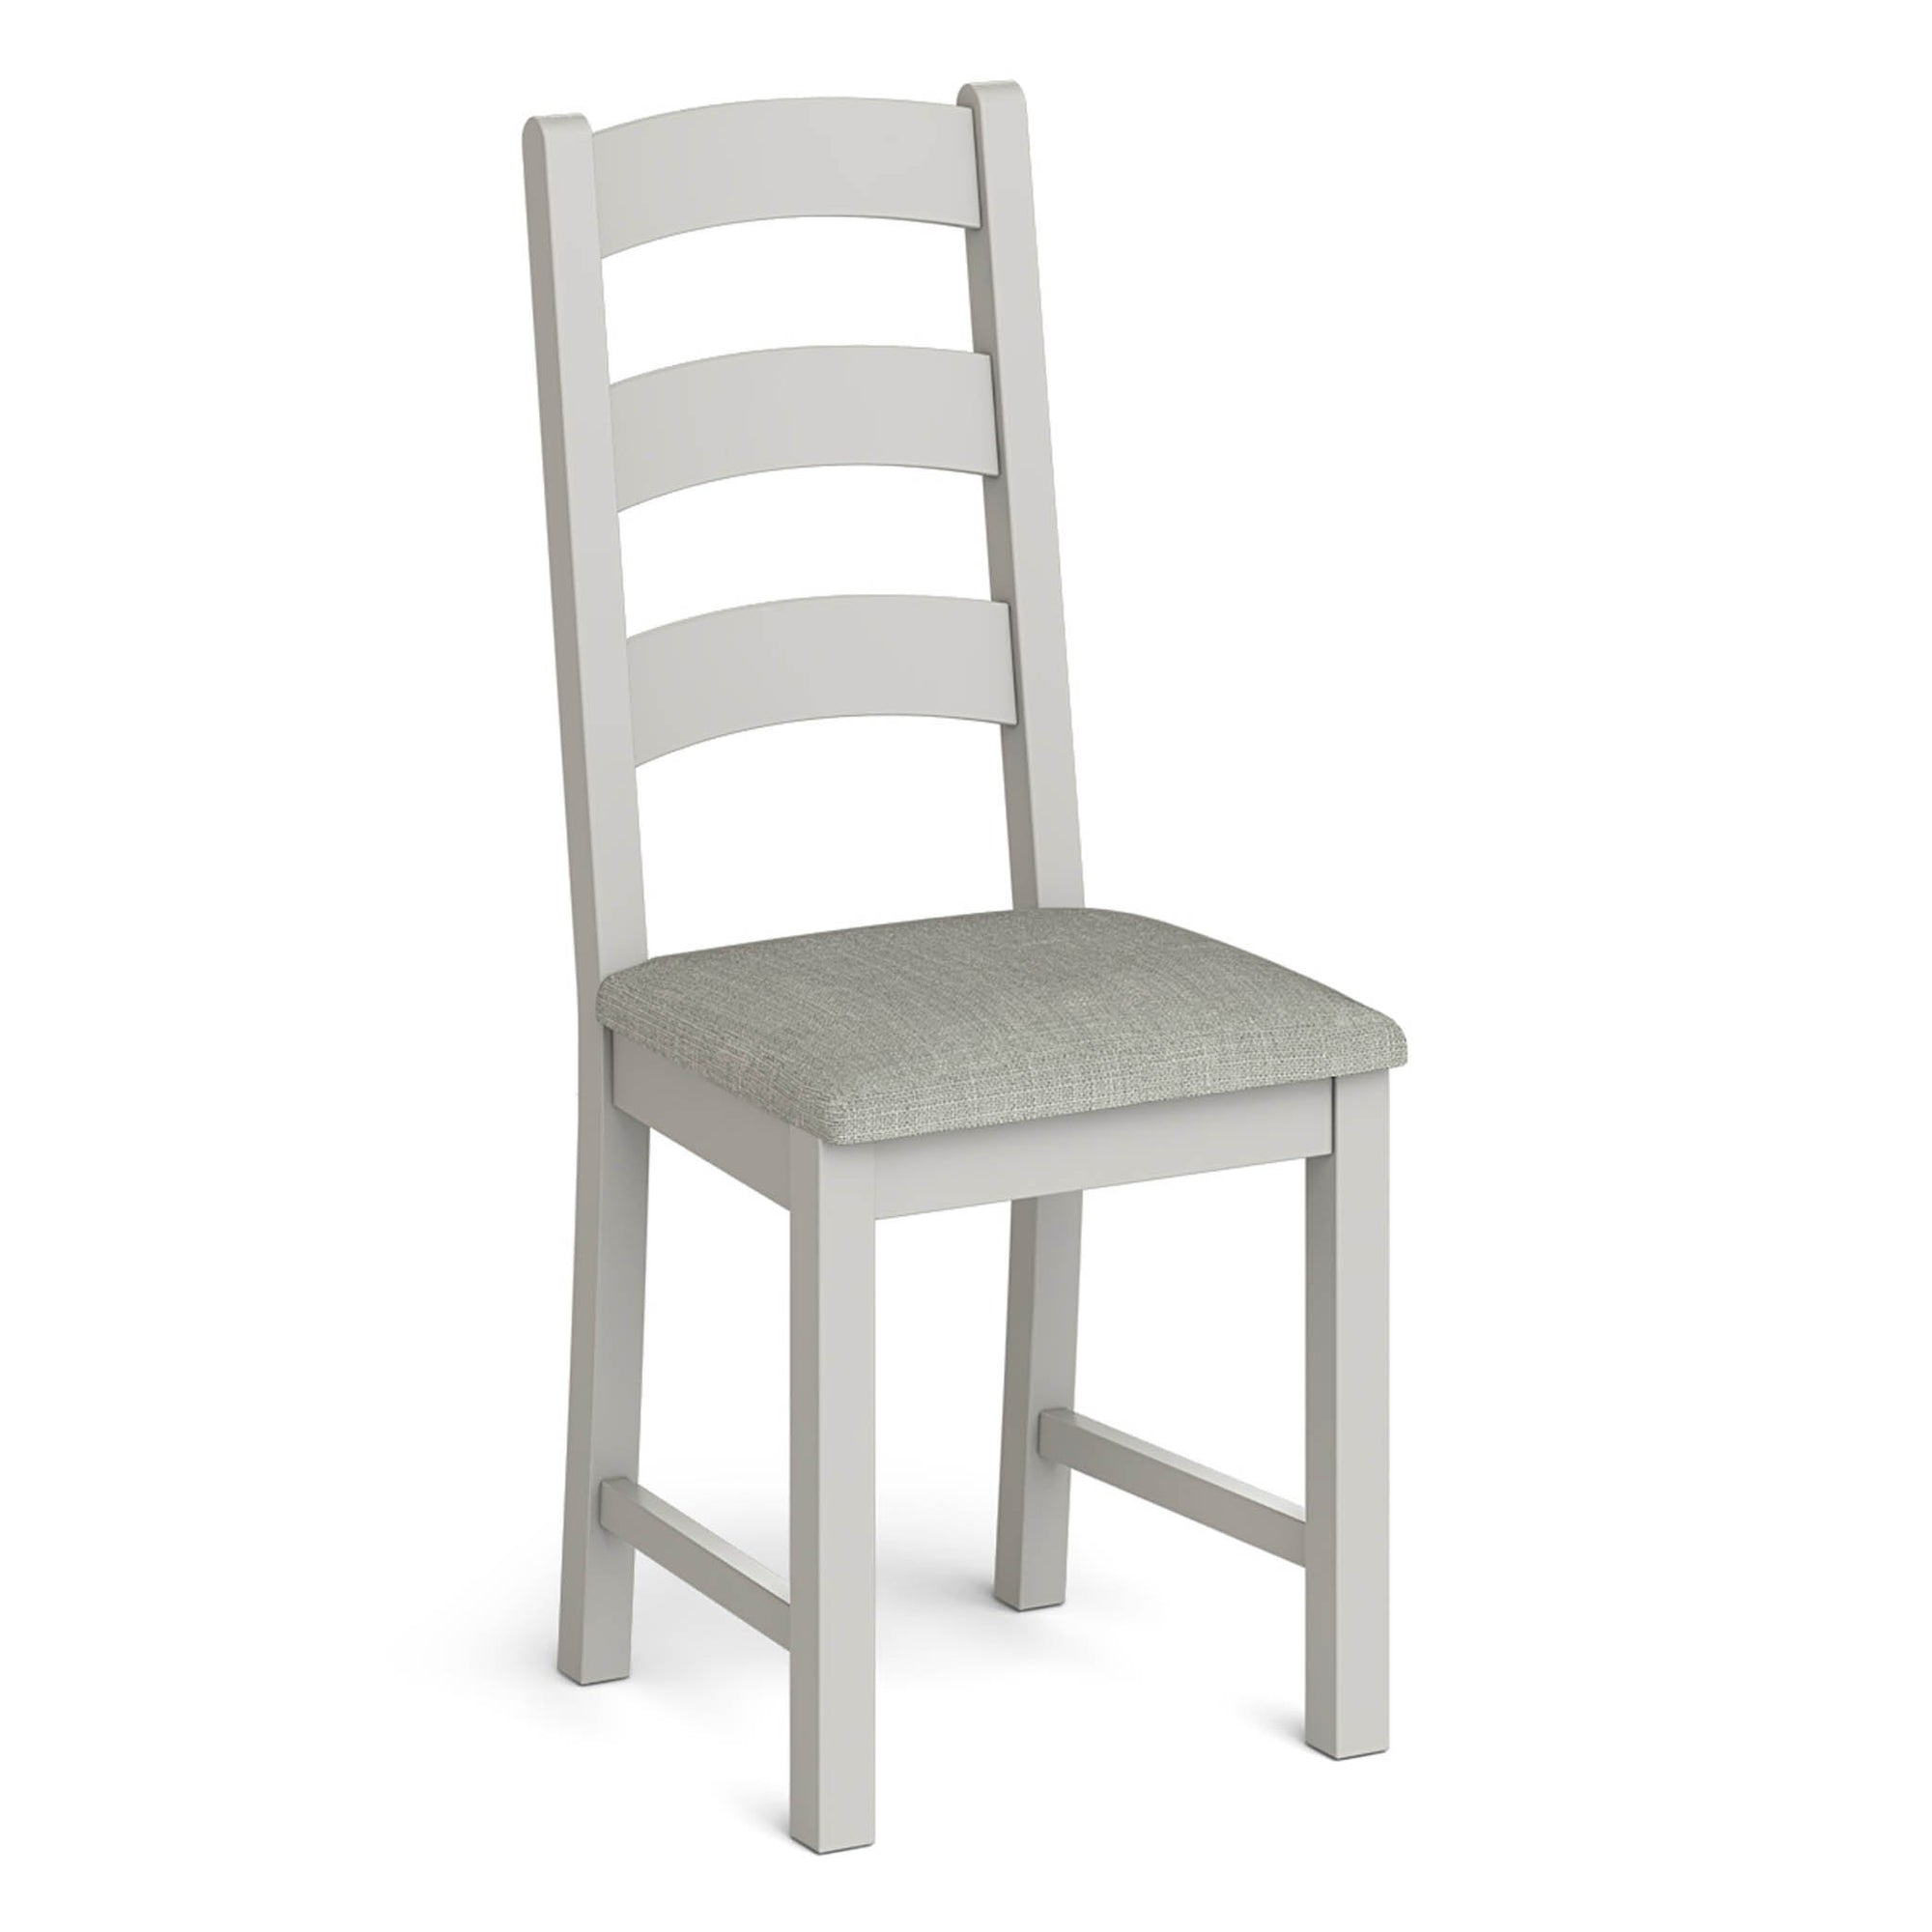 Lundy Grey Ladder Back Dining Chair by Roseland Furniture